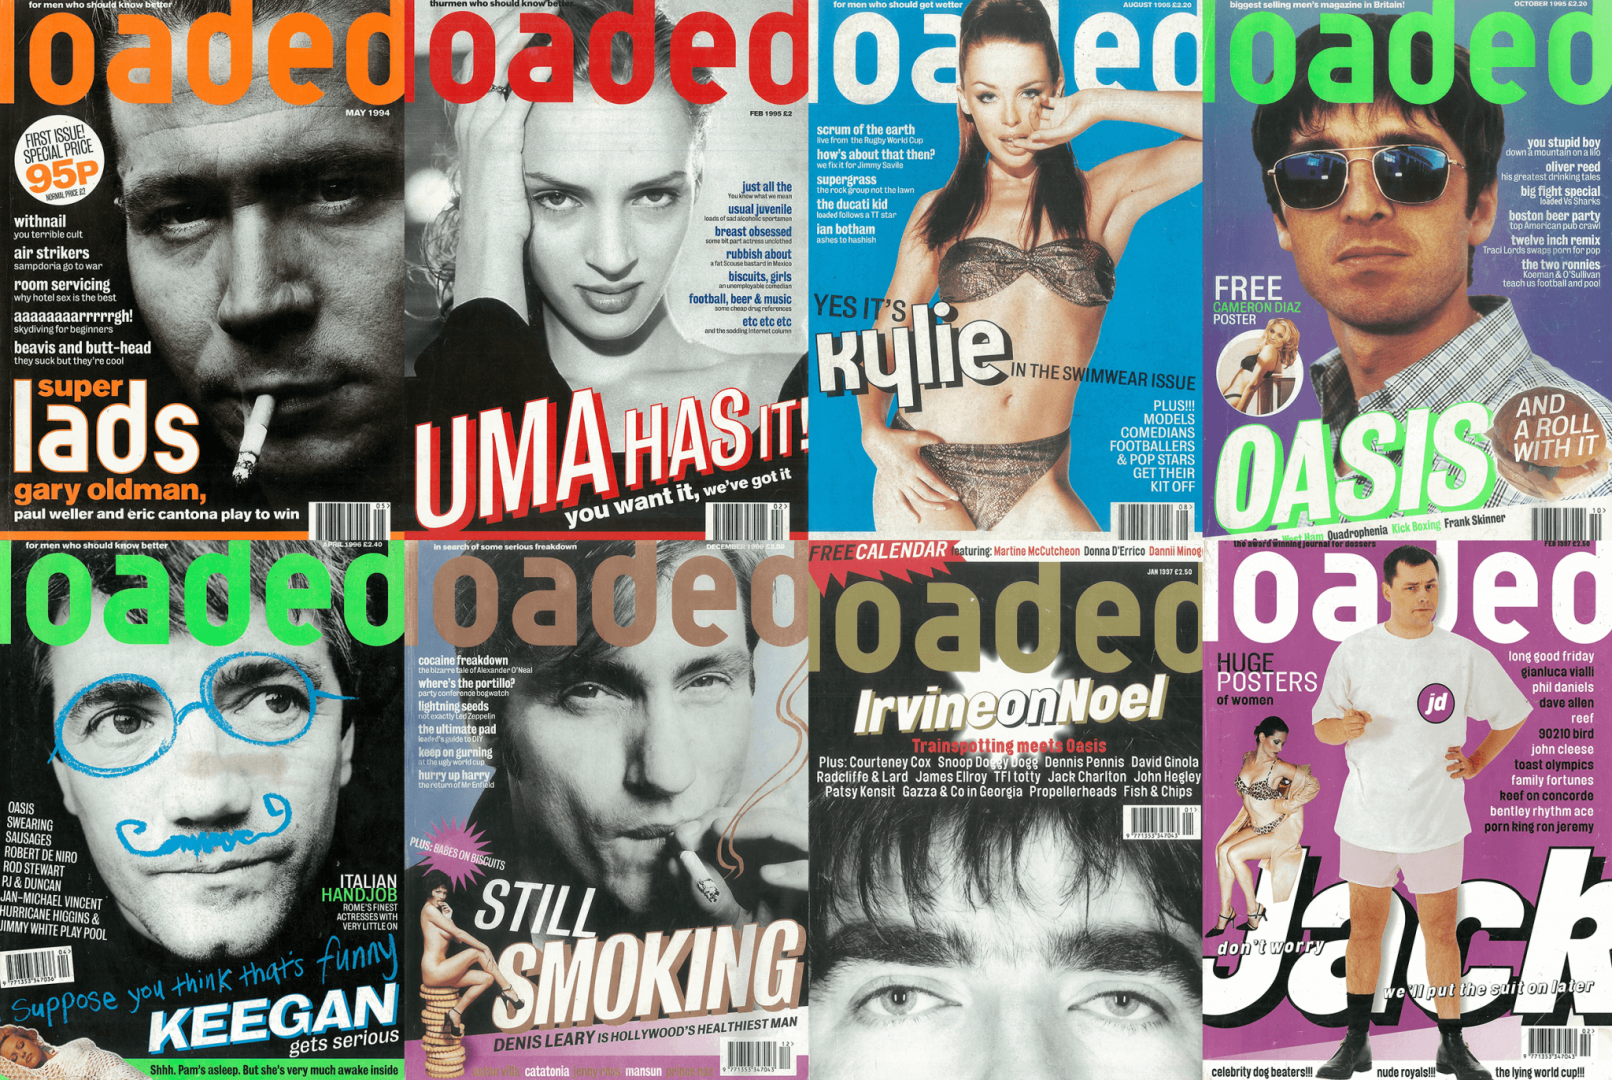 Loaded magazine's greatest covers included Gary Oldman and trousers Jack Dee